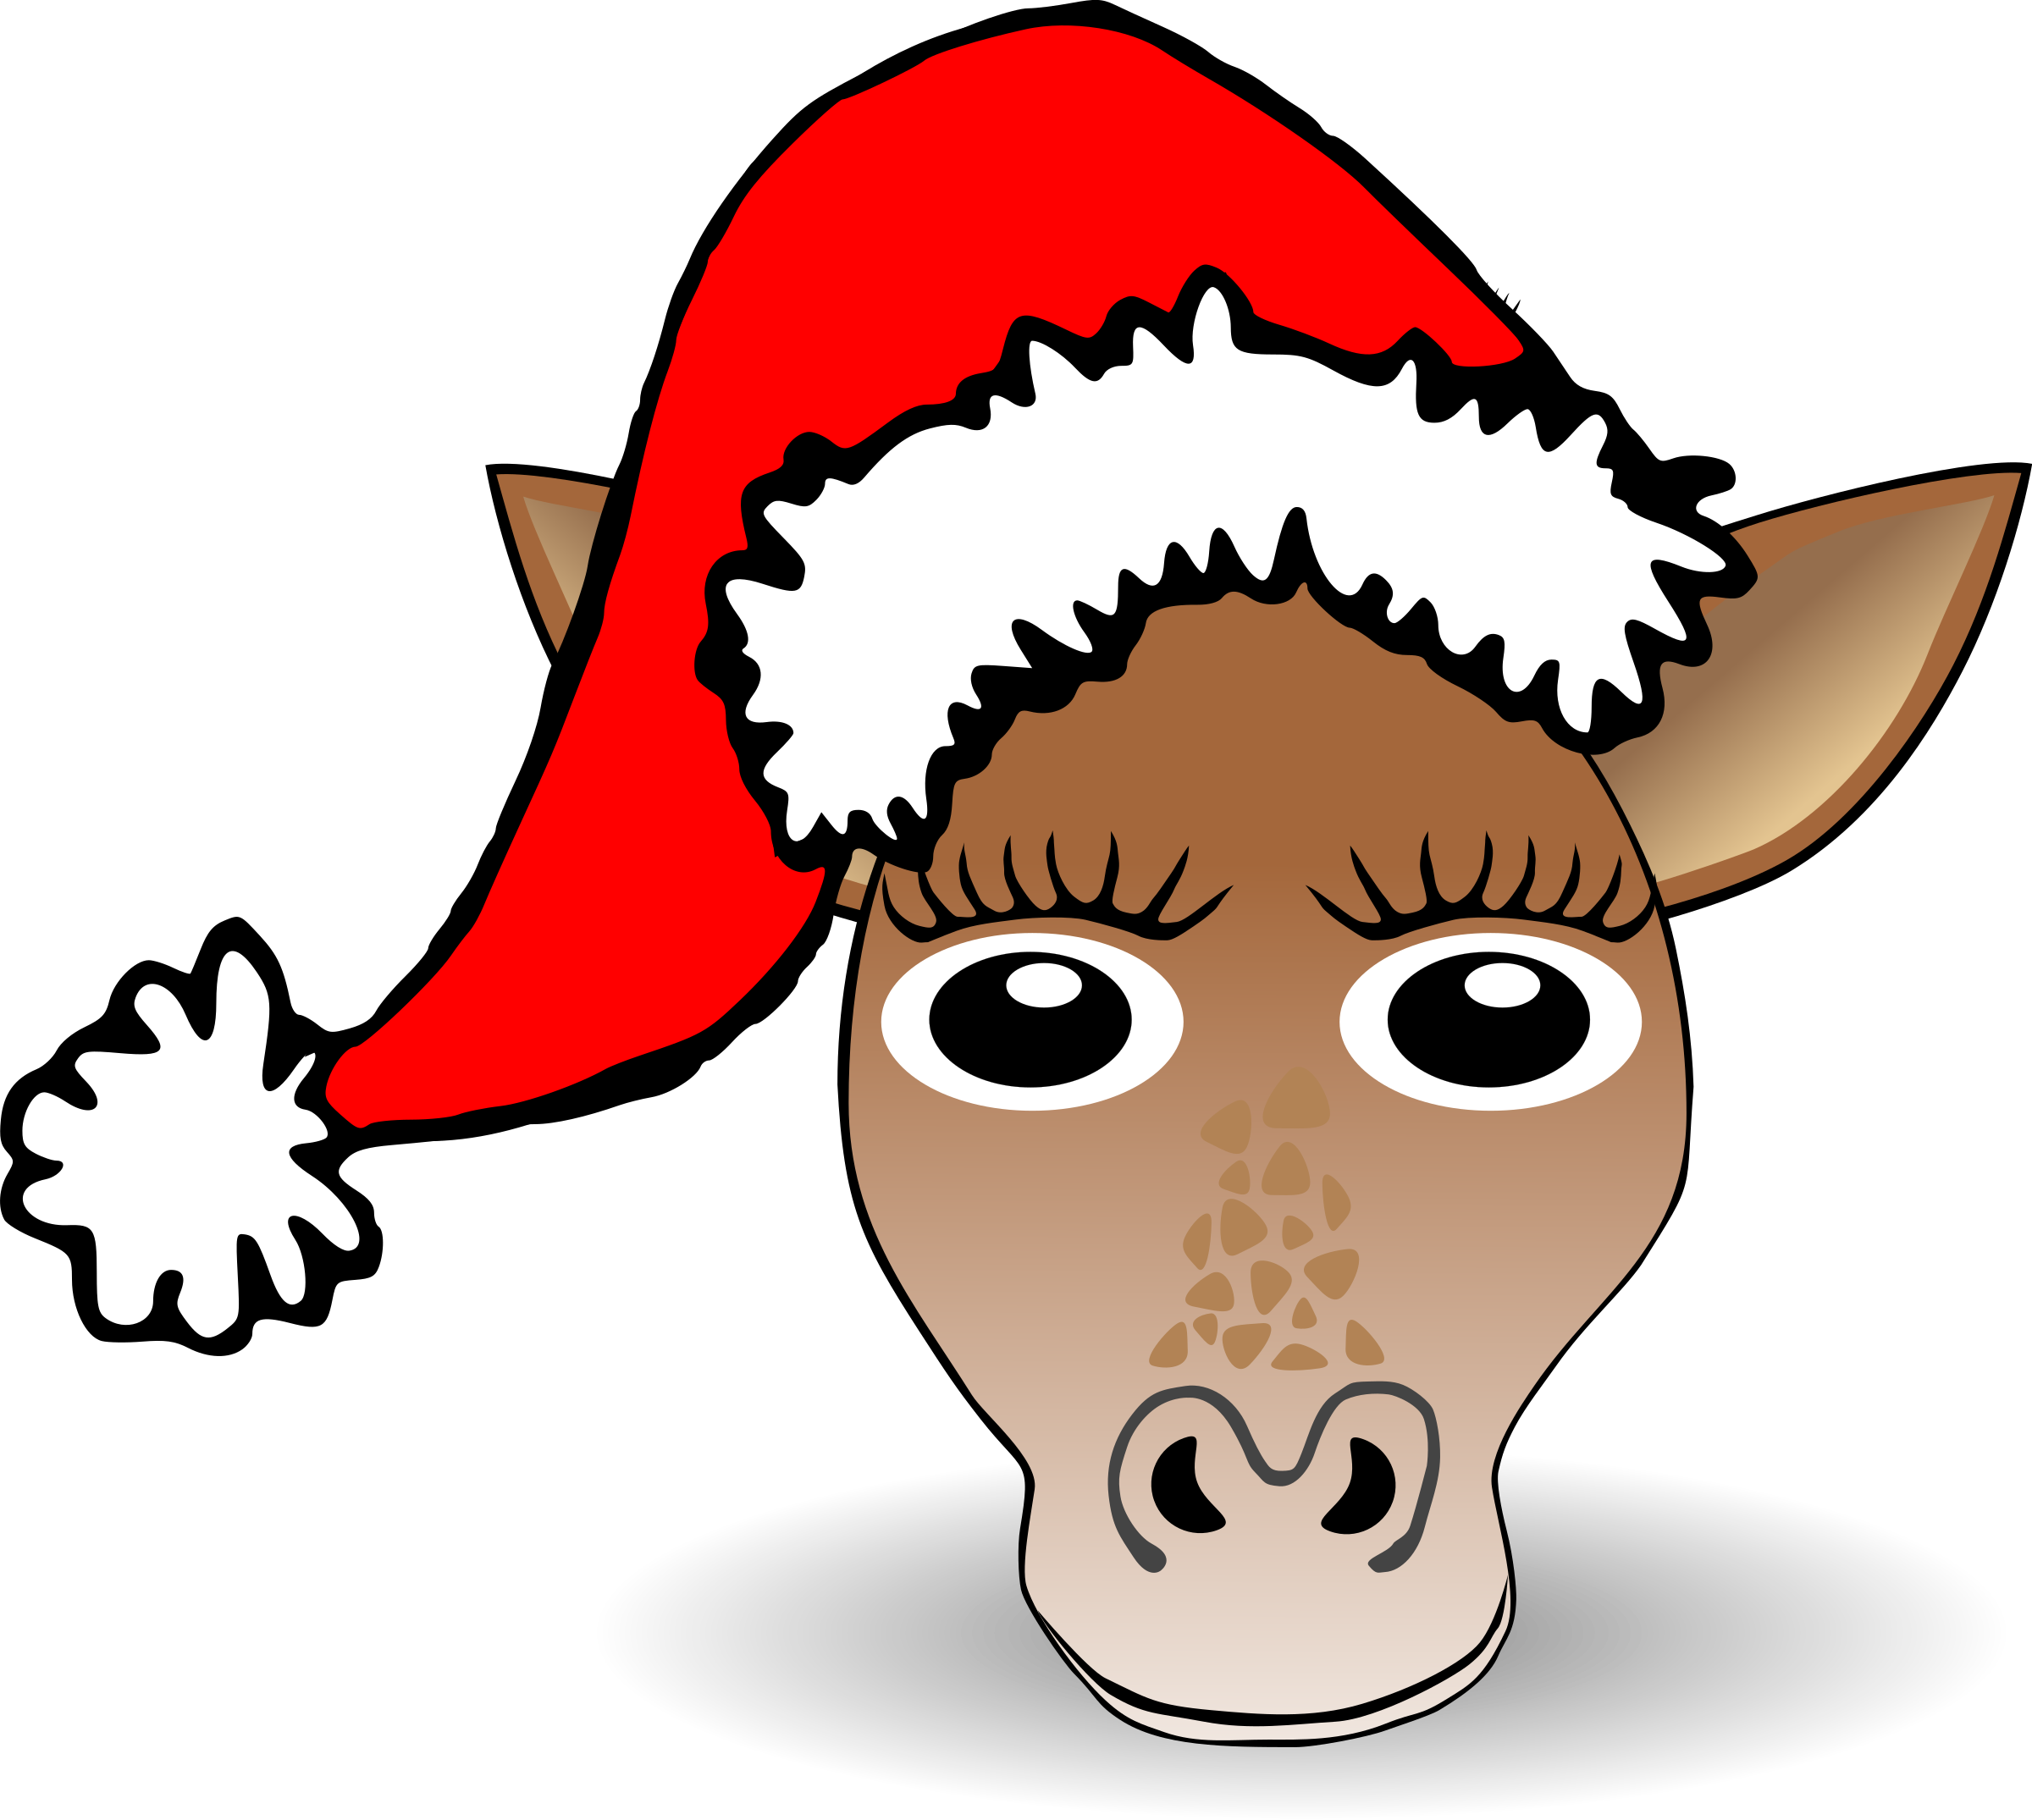 Funny Giraffe Face Cartoon with Santa Claus hat by palomaironique